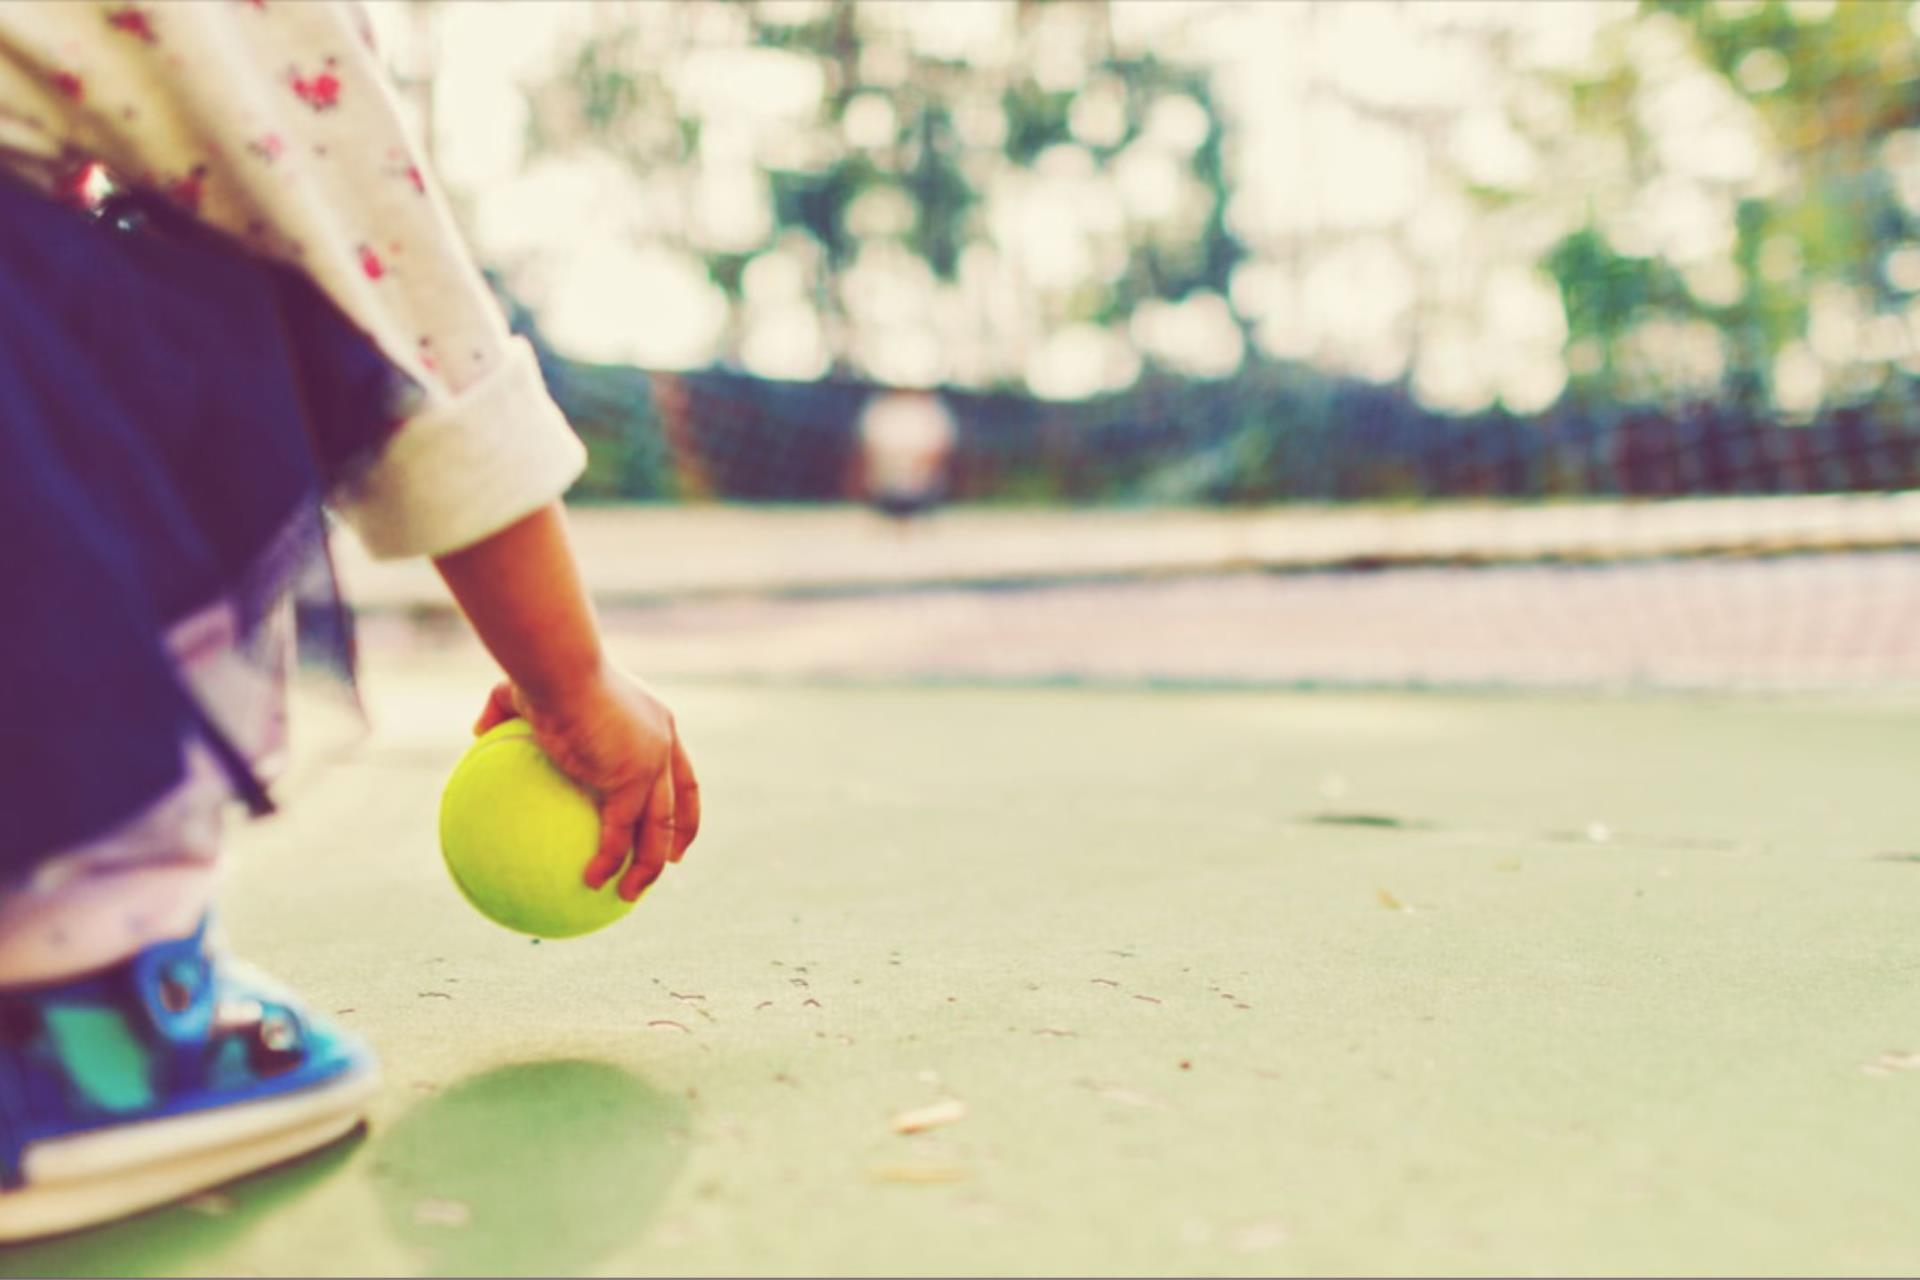 A toddler bends down to pick up a tennis ball on the tennis court.